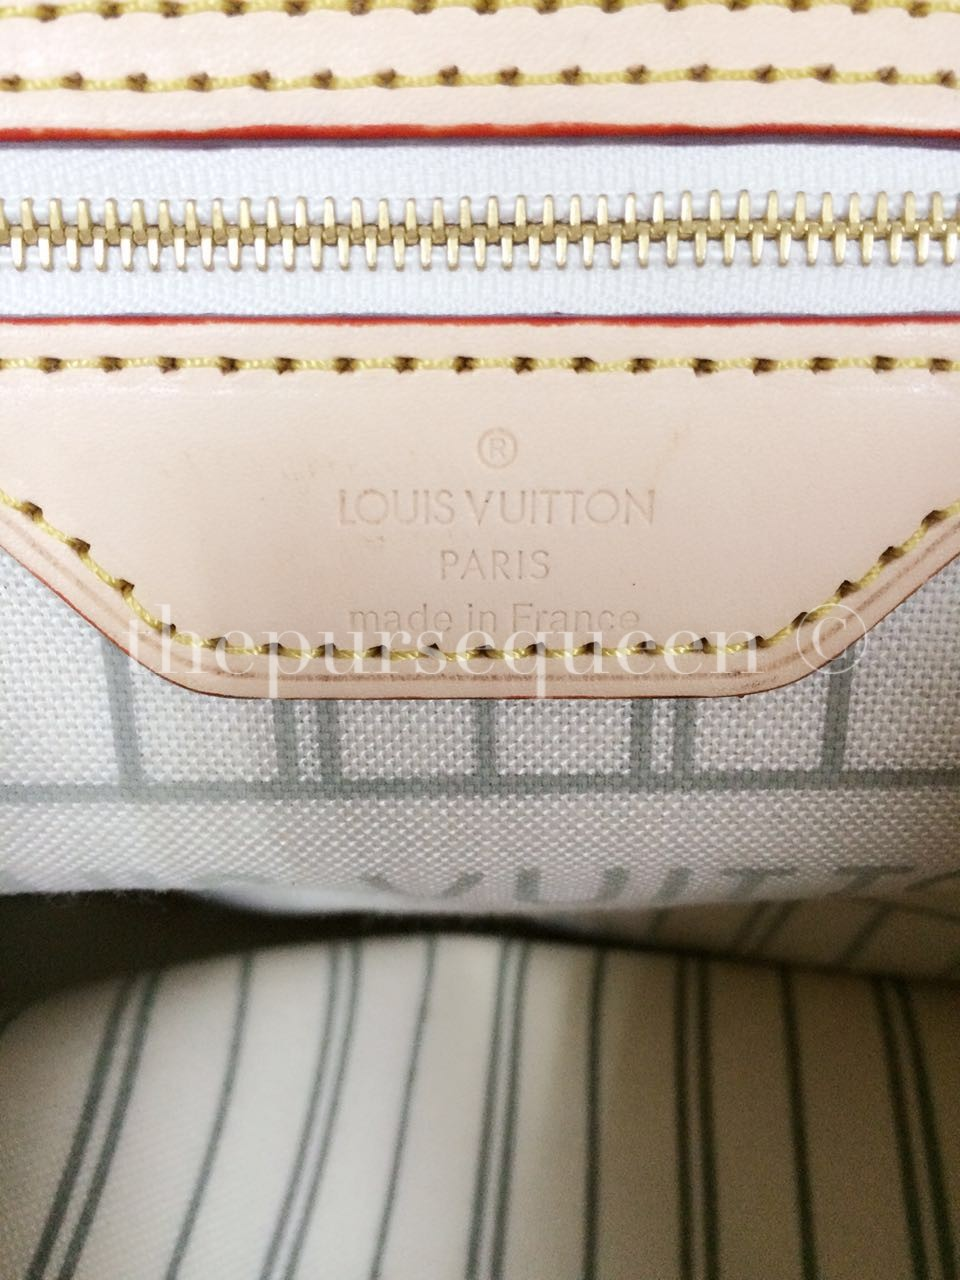 louis vuitton neverfull replica stamp